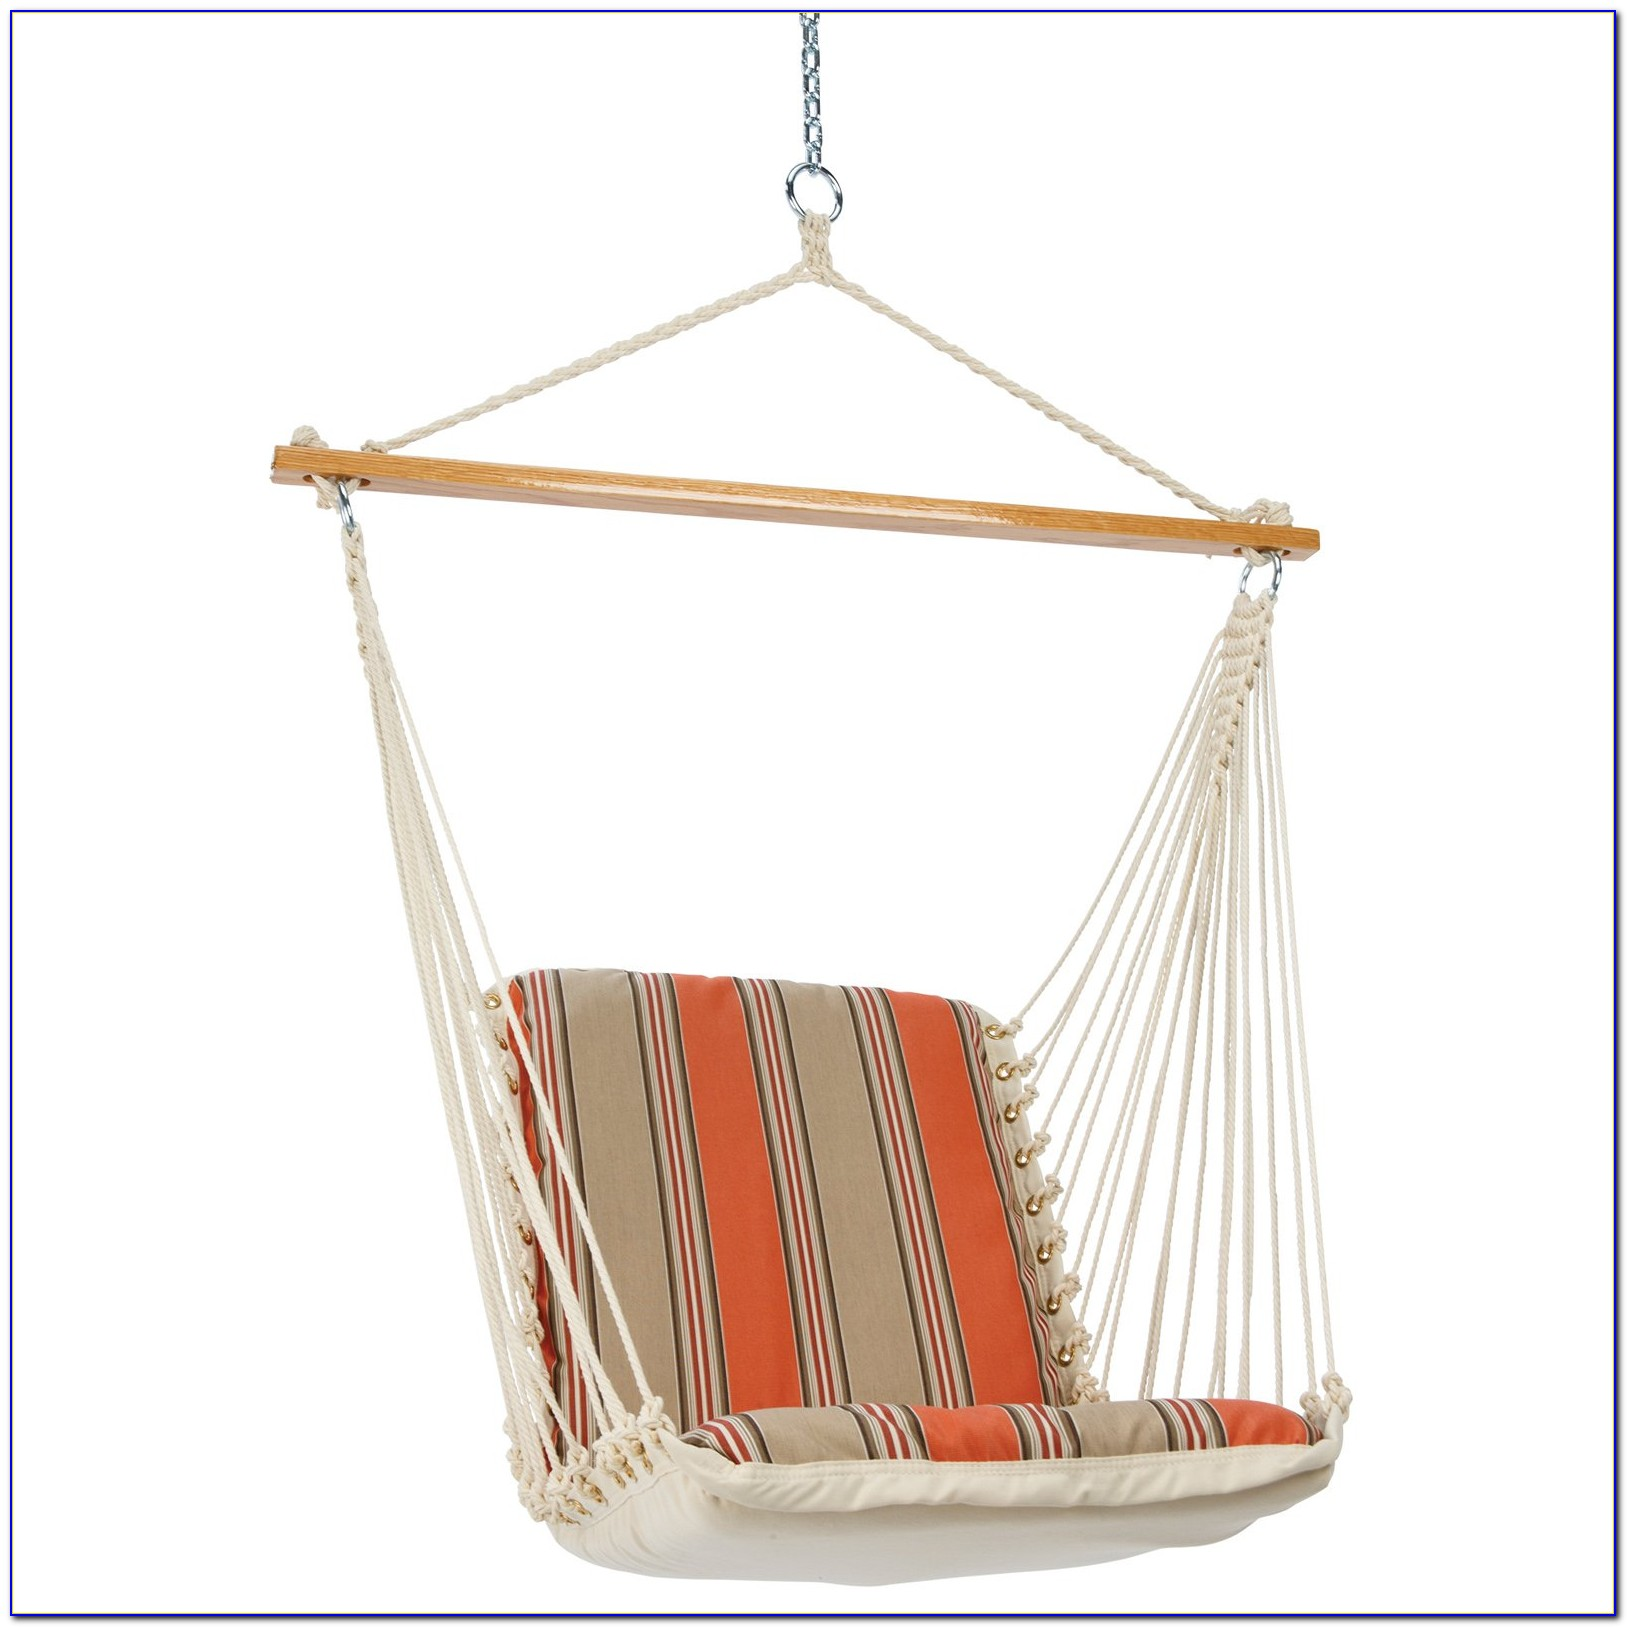 Hammock Chair Swing Amazon